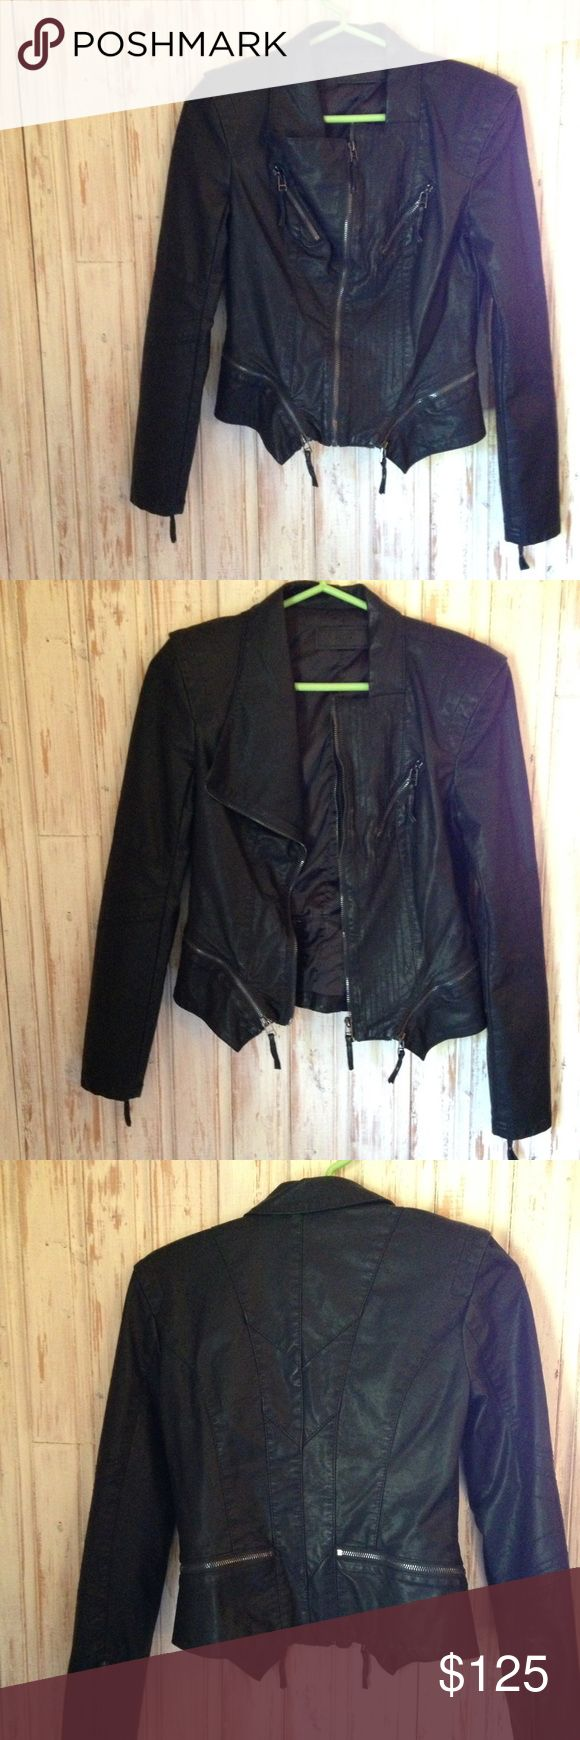 SALE! BlankNYC Leather Jacket BlankNYC leather jacket. Never Worn. Super form fitting and figure flattering. Blank NYC Jackets & Coats